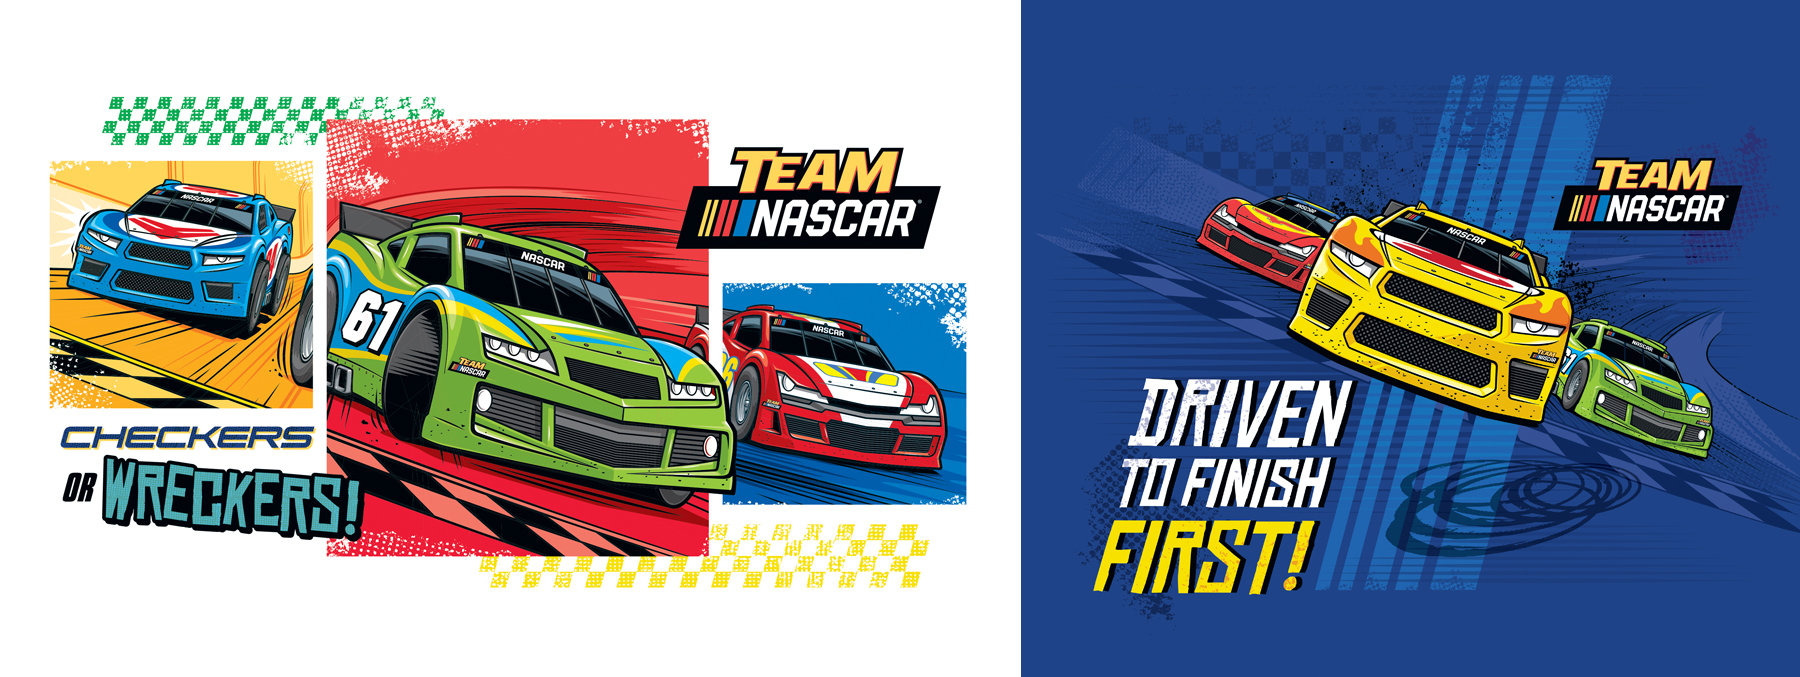 Team Nascar Style Guide Design - Panel 3